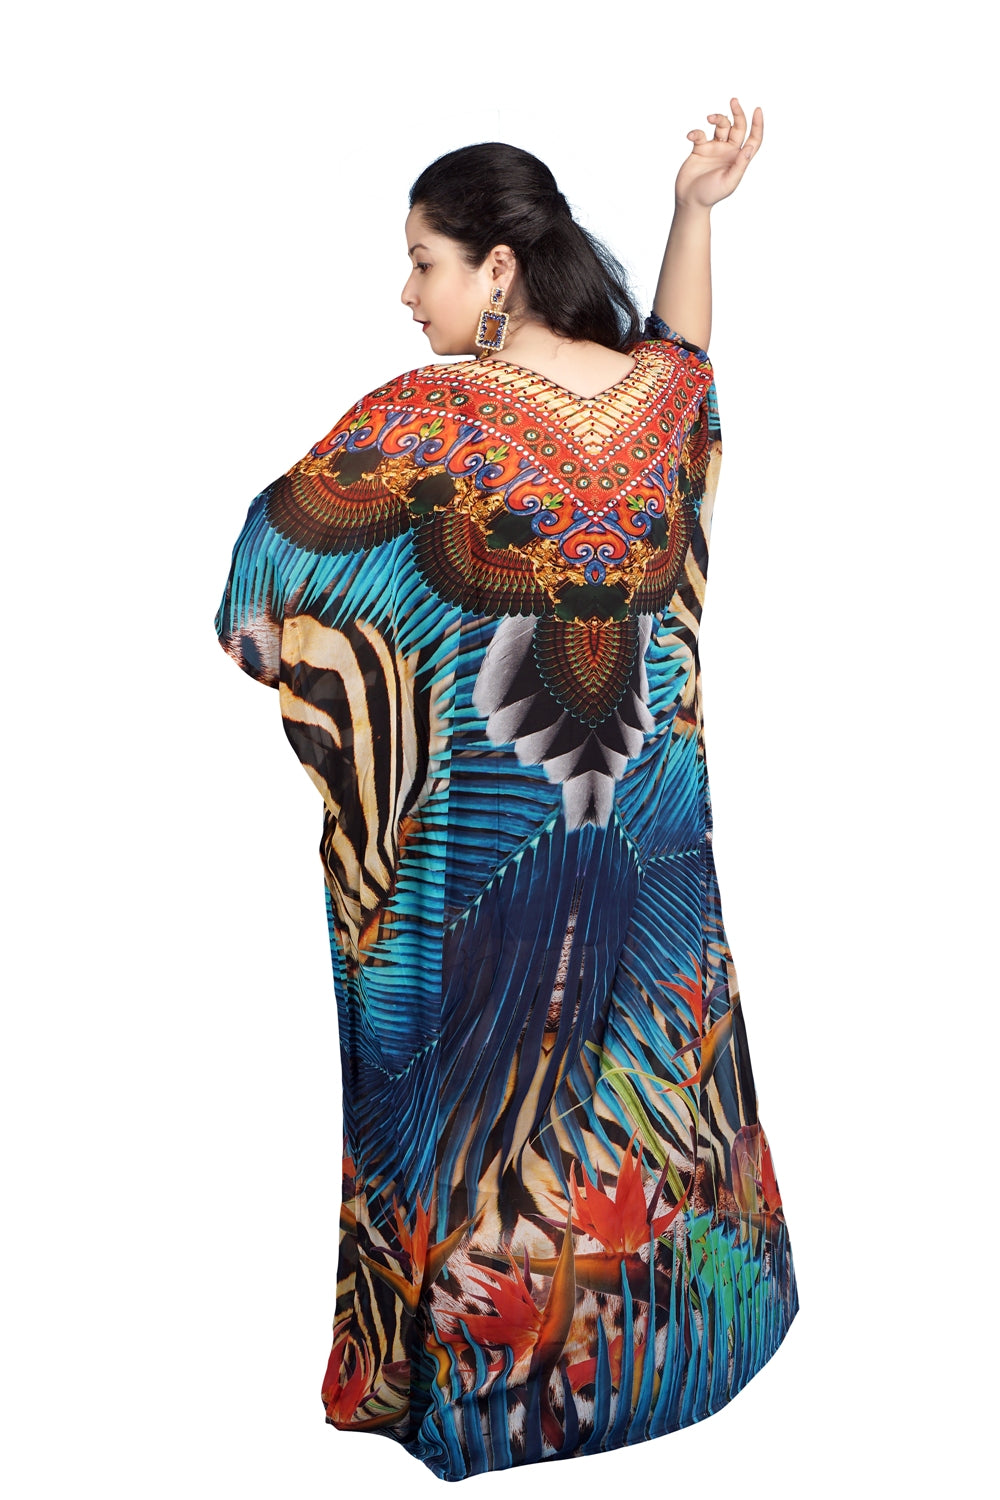 Exotic Palm Leaf Printed Beach Style Cheap Kaftan on Trend this season to wear - Silk kaftan